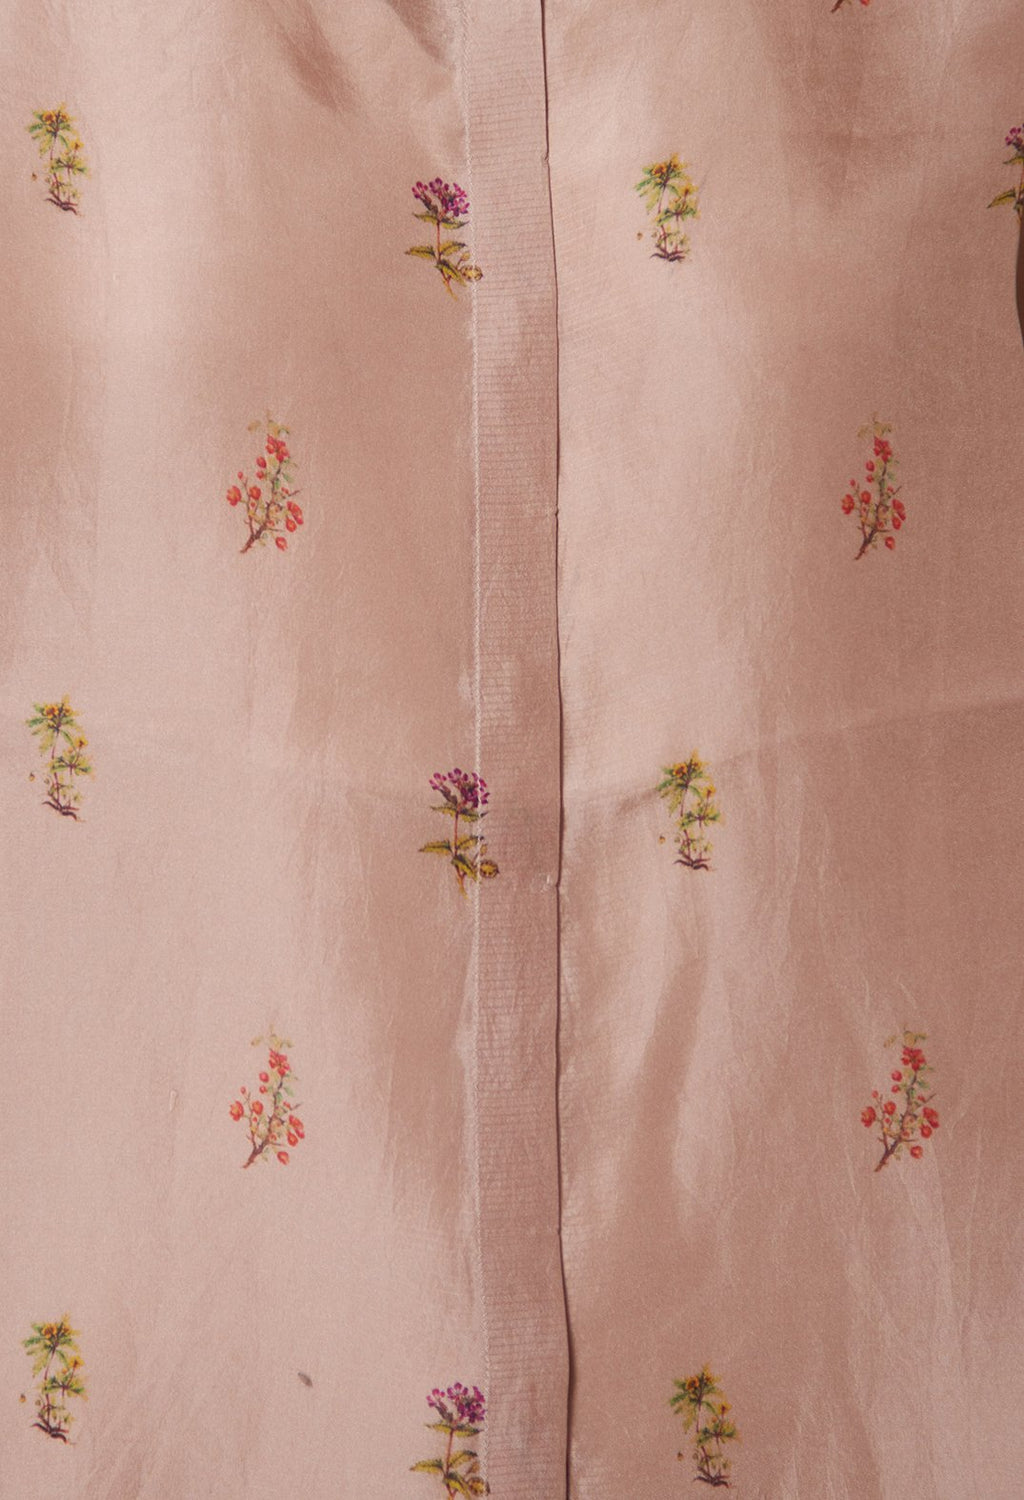 Anna Country Flowers Shirt in Mahogany Rose